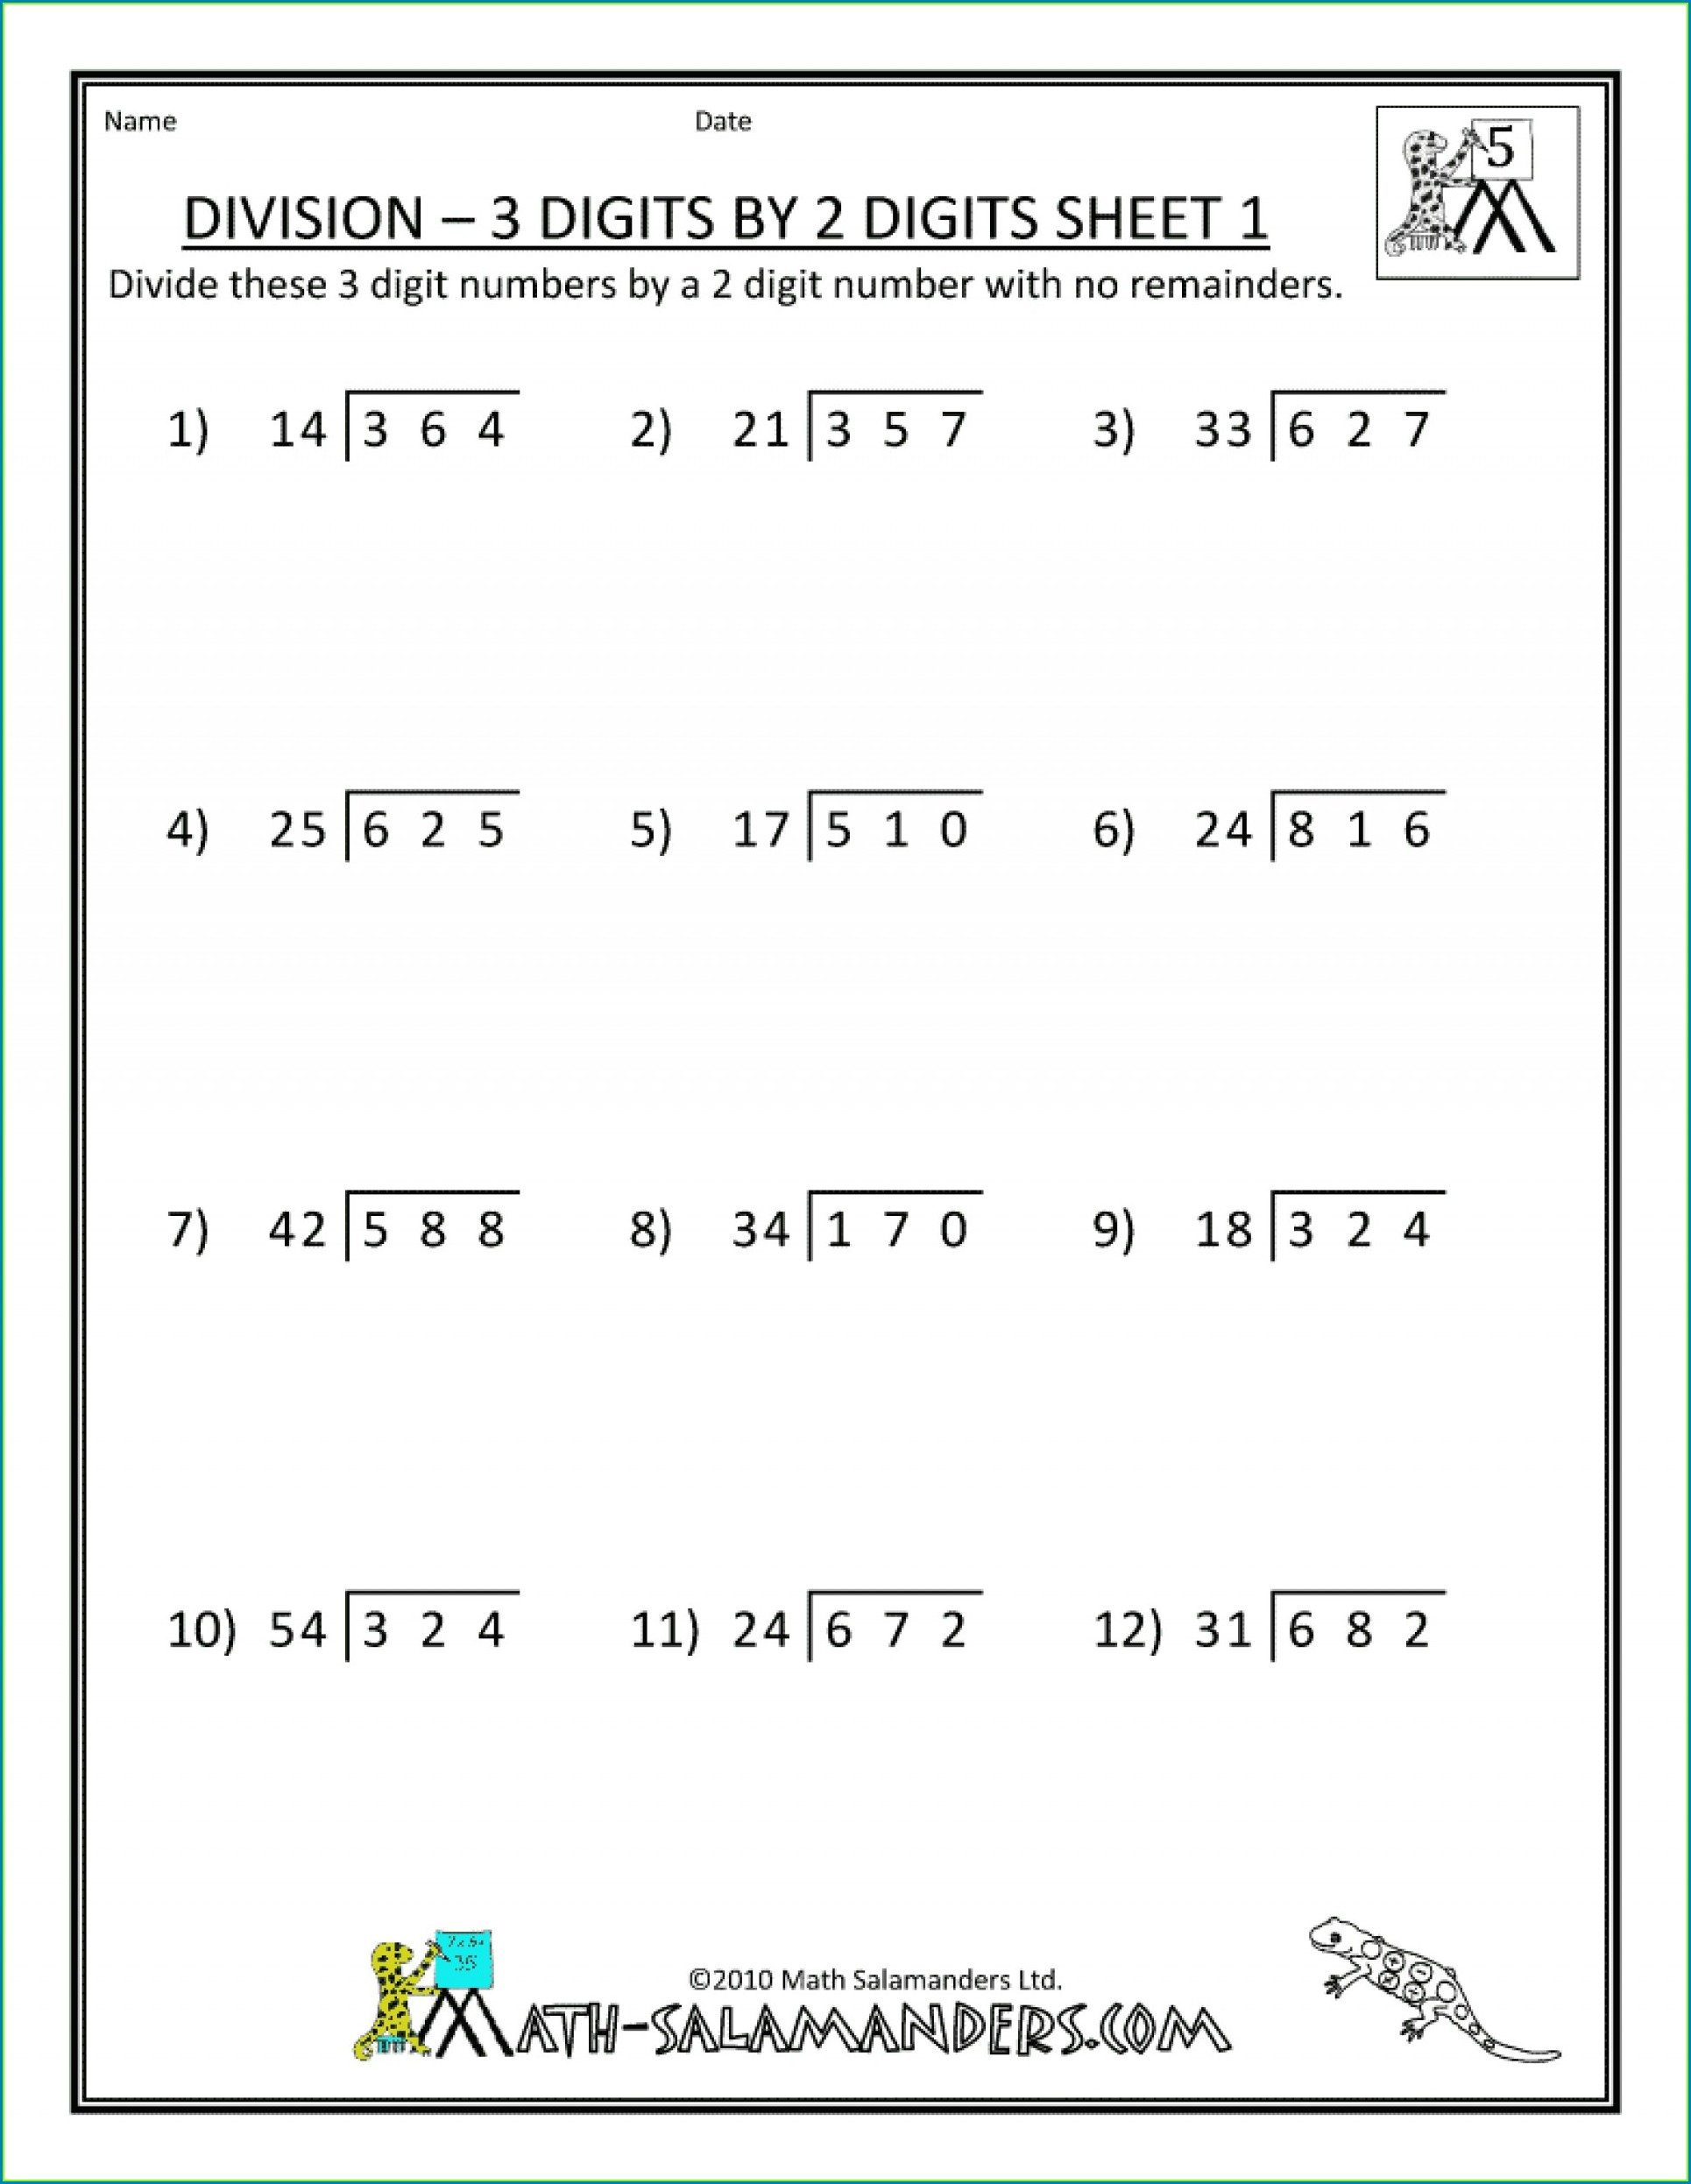 5th Grade Math Word Problems Worksheets With Answers